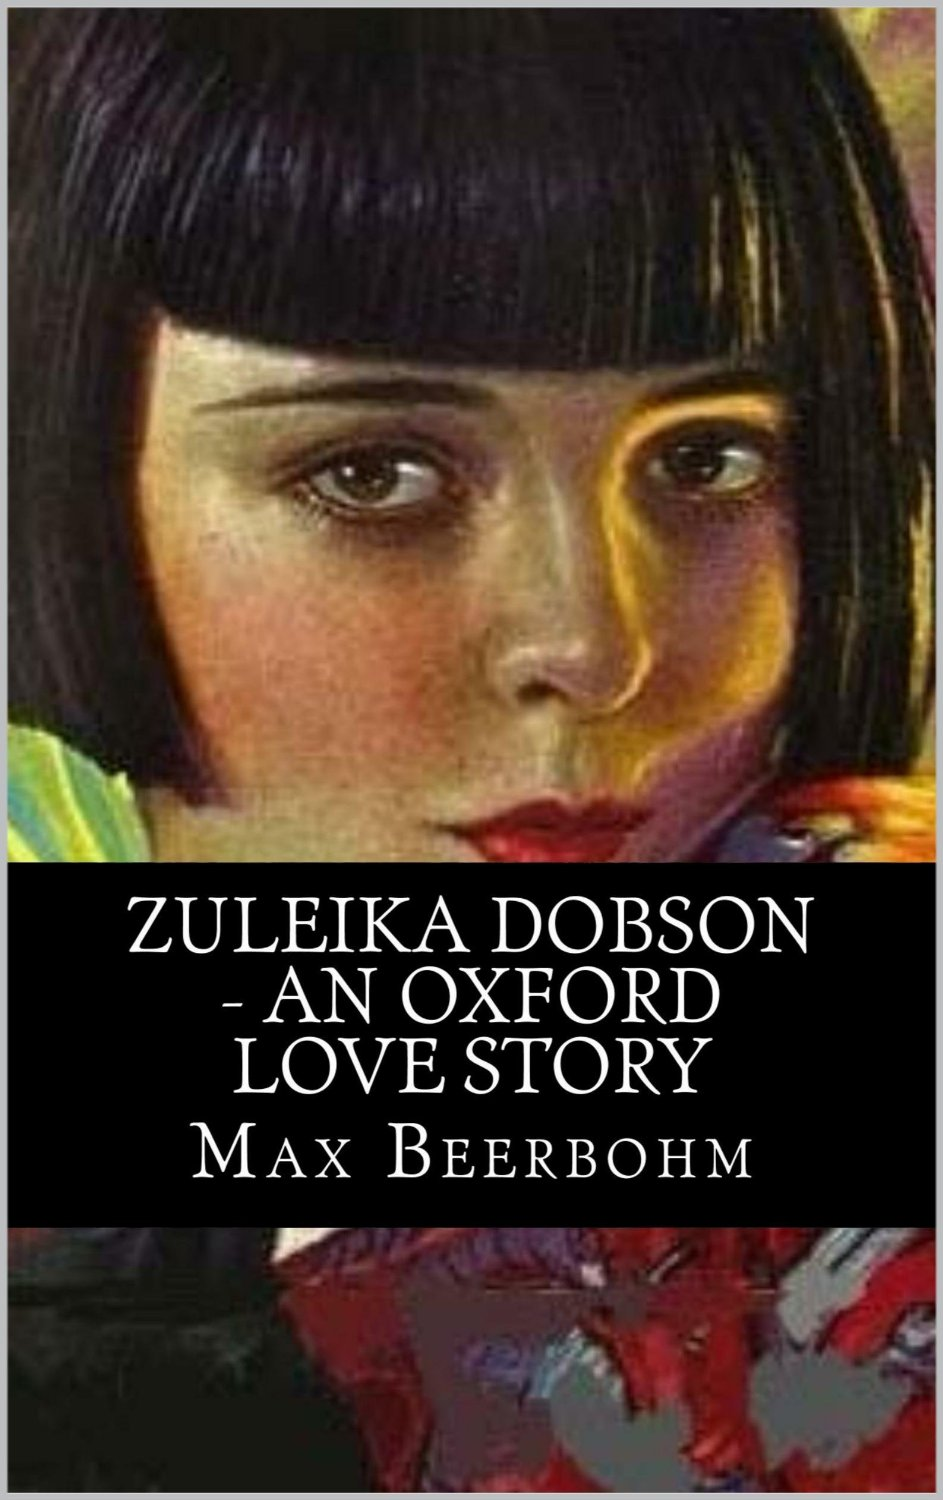 An image of a cover for Zuleika Dobson by Max Beerbohm, curiously enough sporting the image of Colleen Moore.